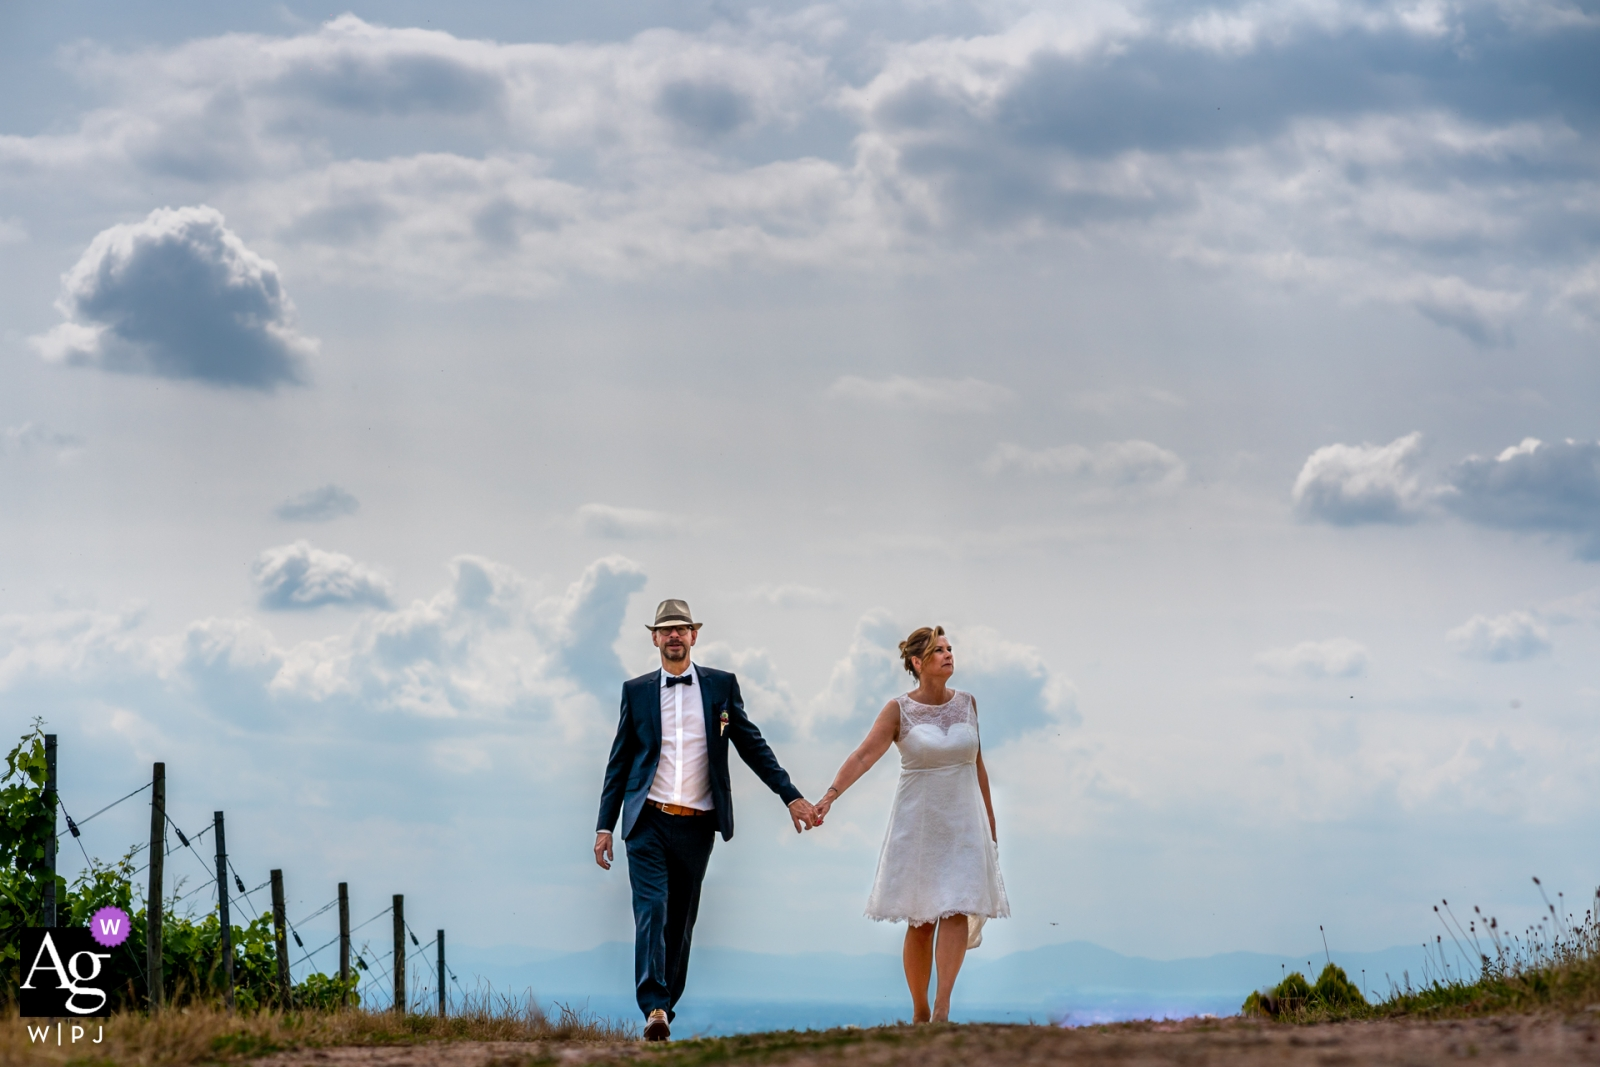 Durbach Couple walking together | Wedding portraits under the clouds